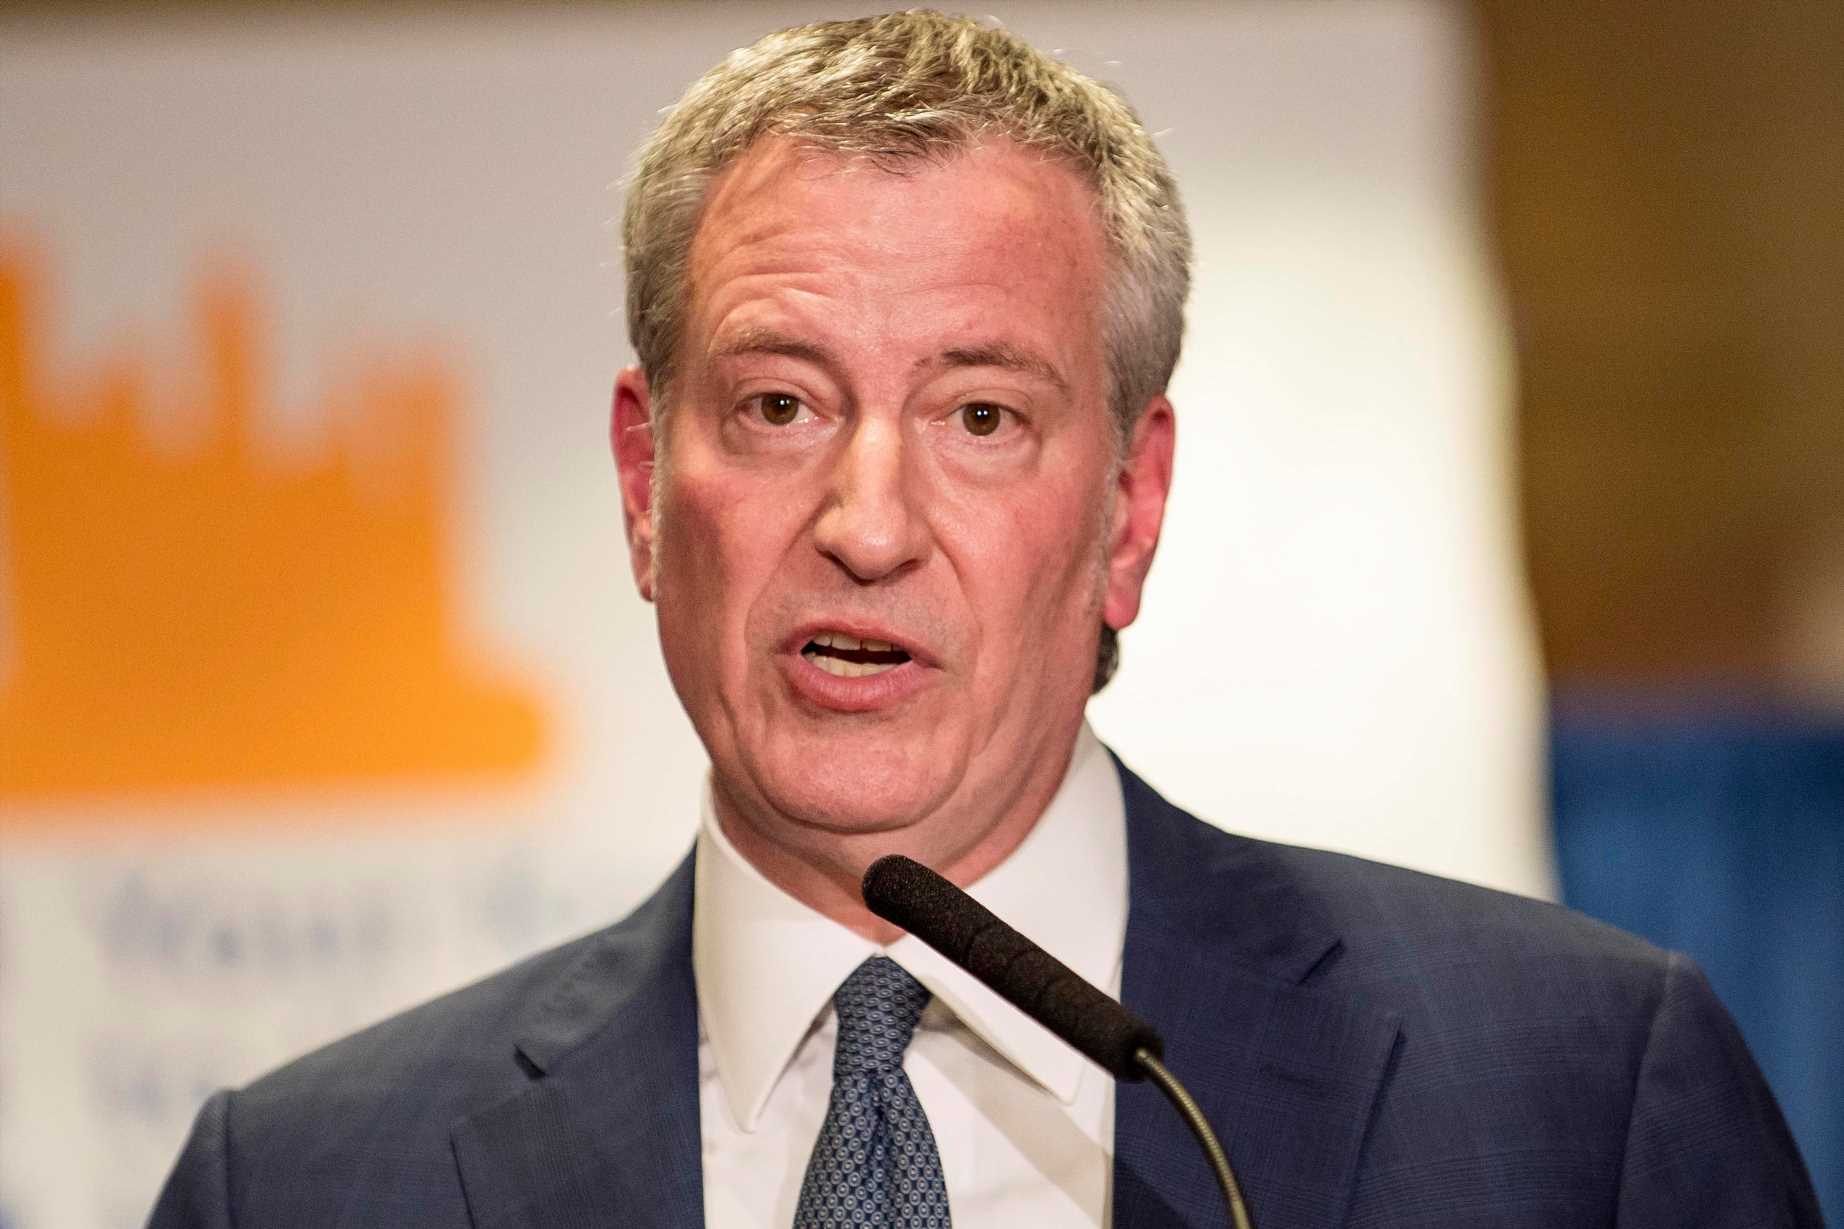 Bill de Blasio officially launches 2020 presidential campaign